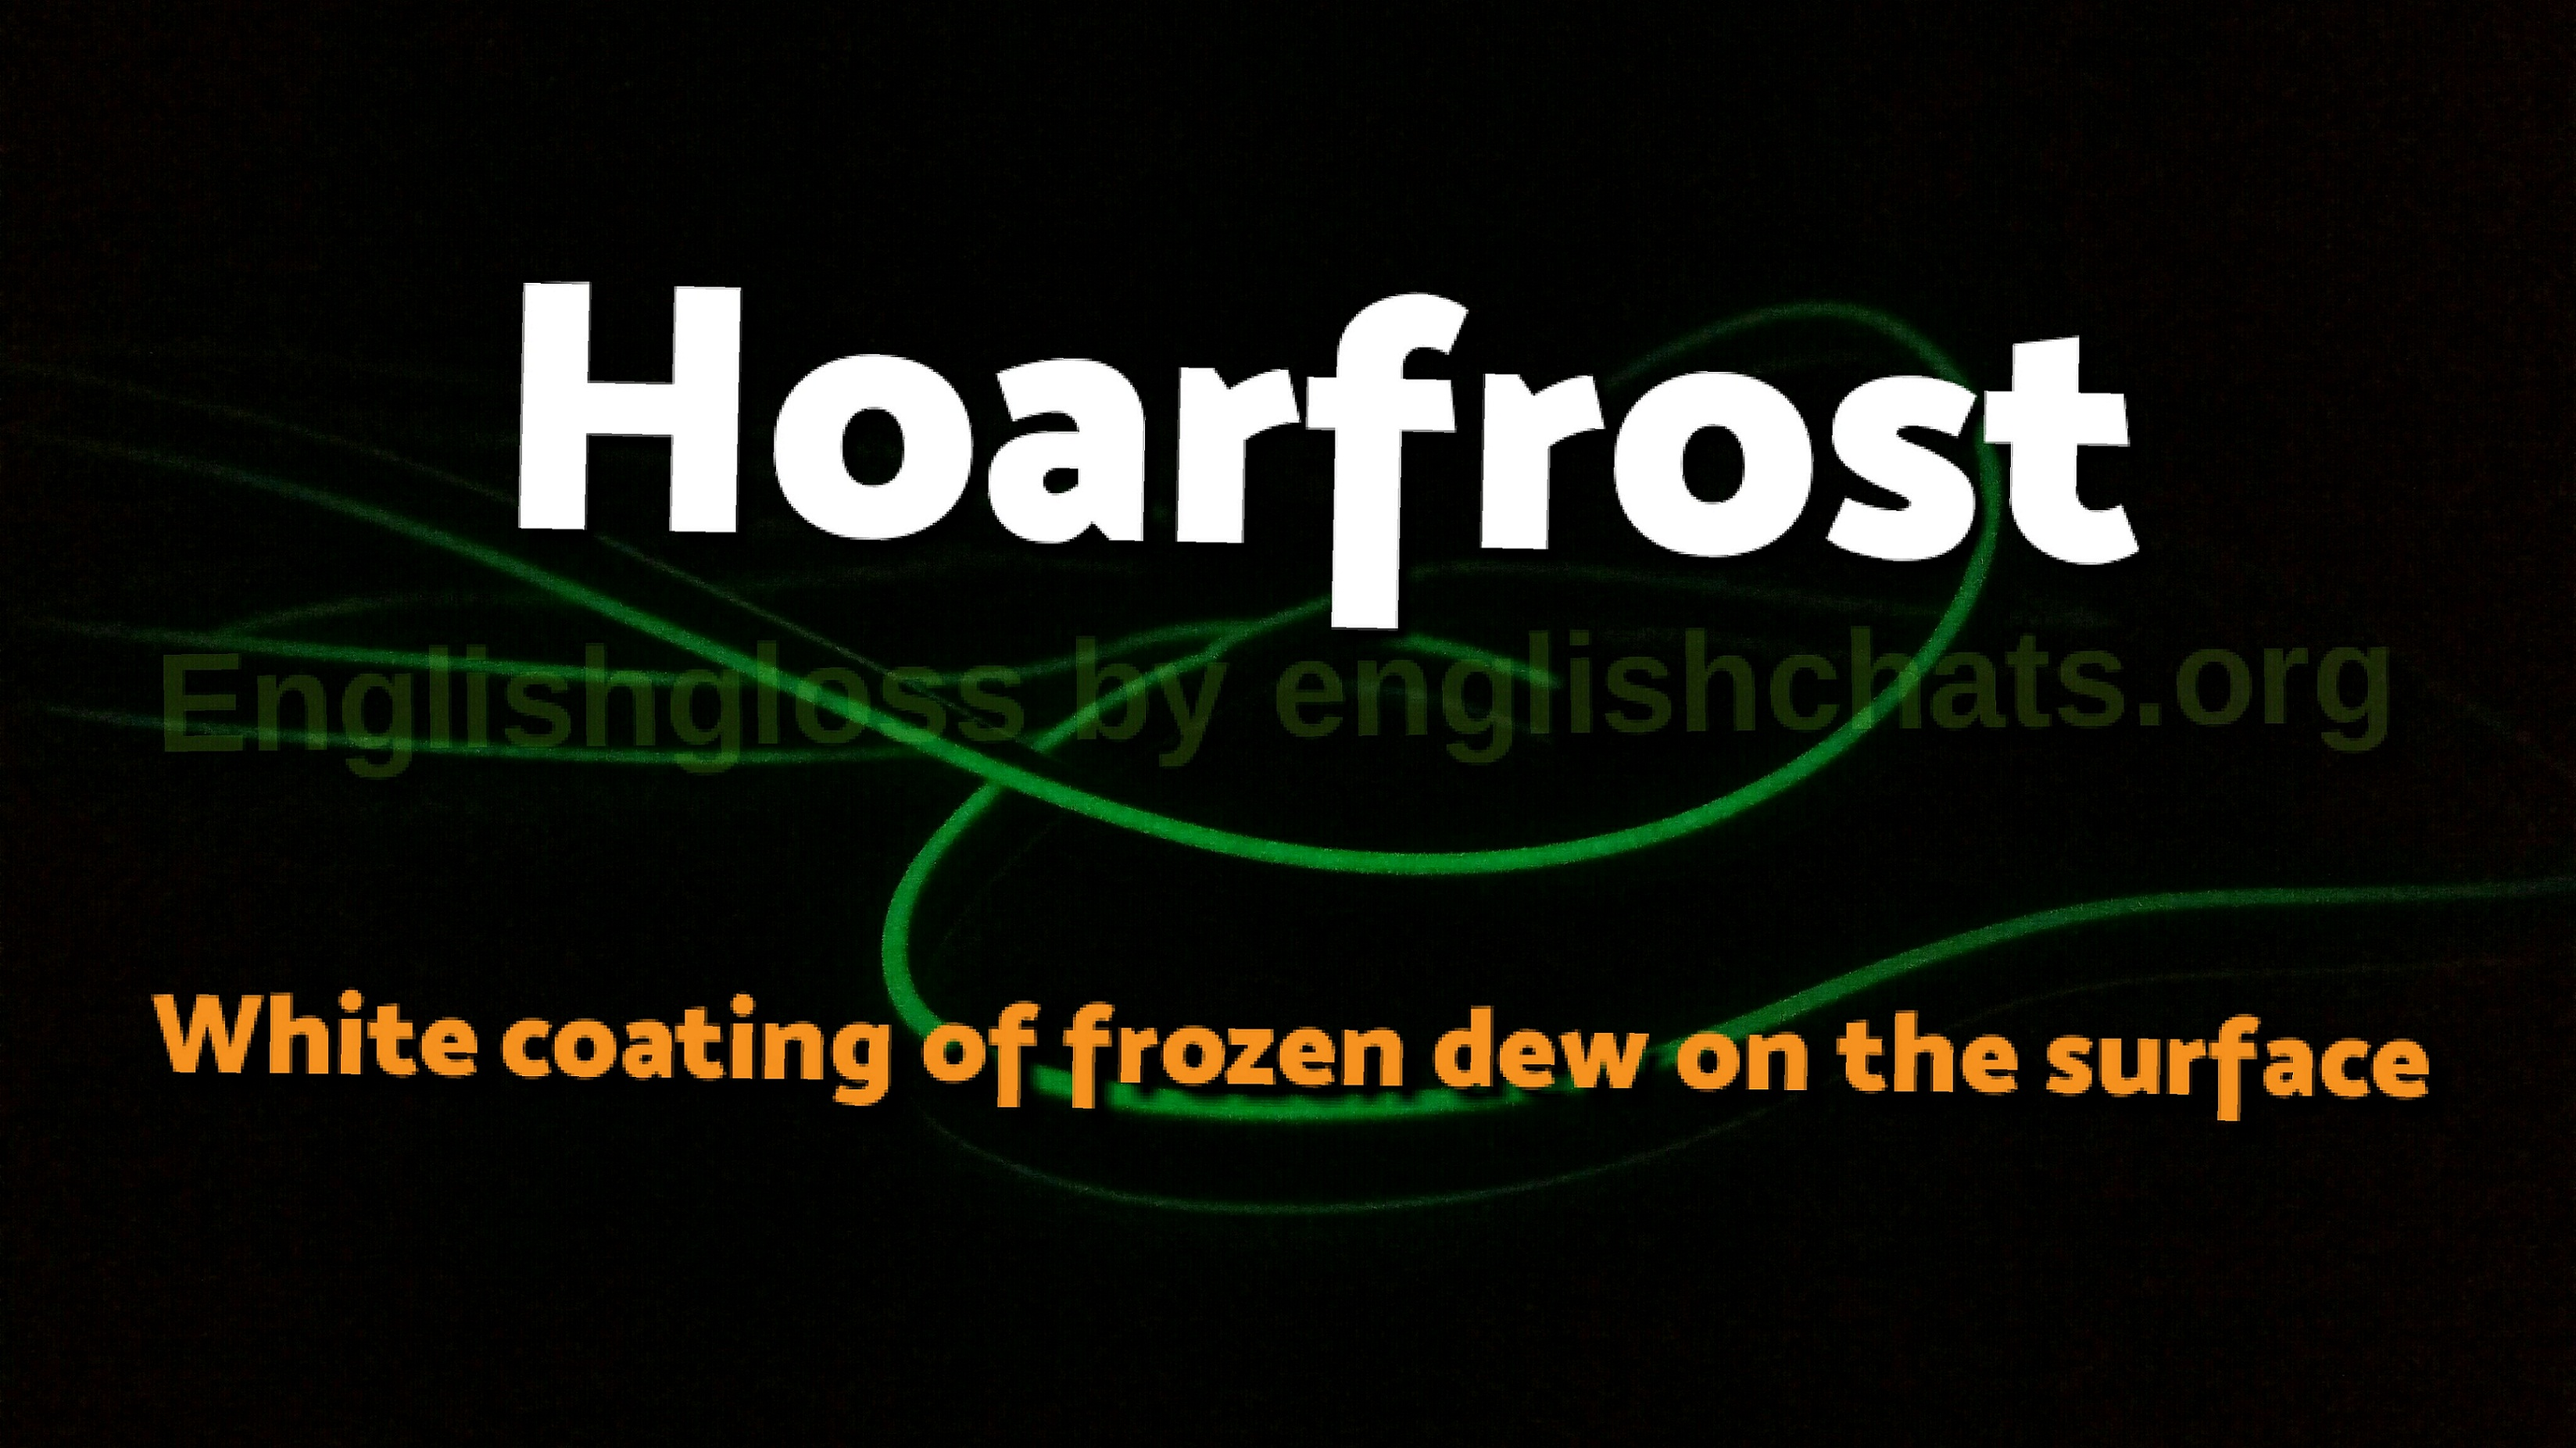 Word of the day- Hoarfrost